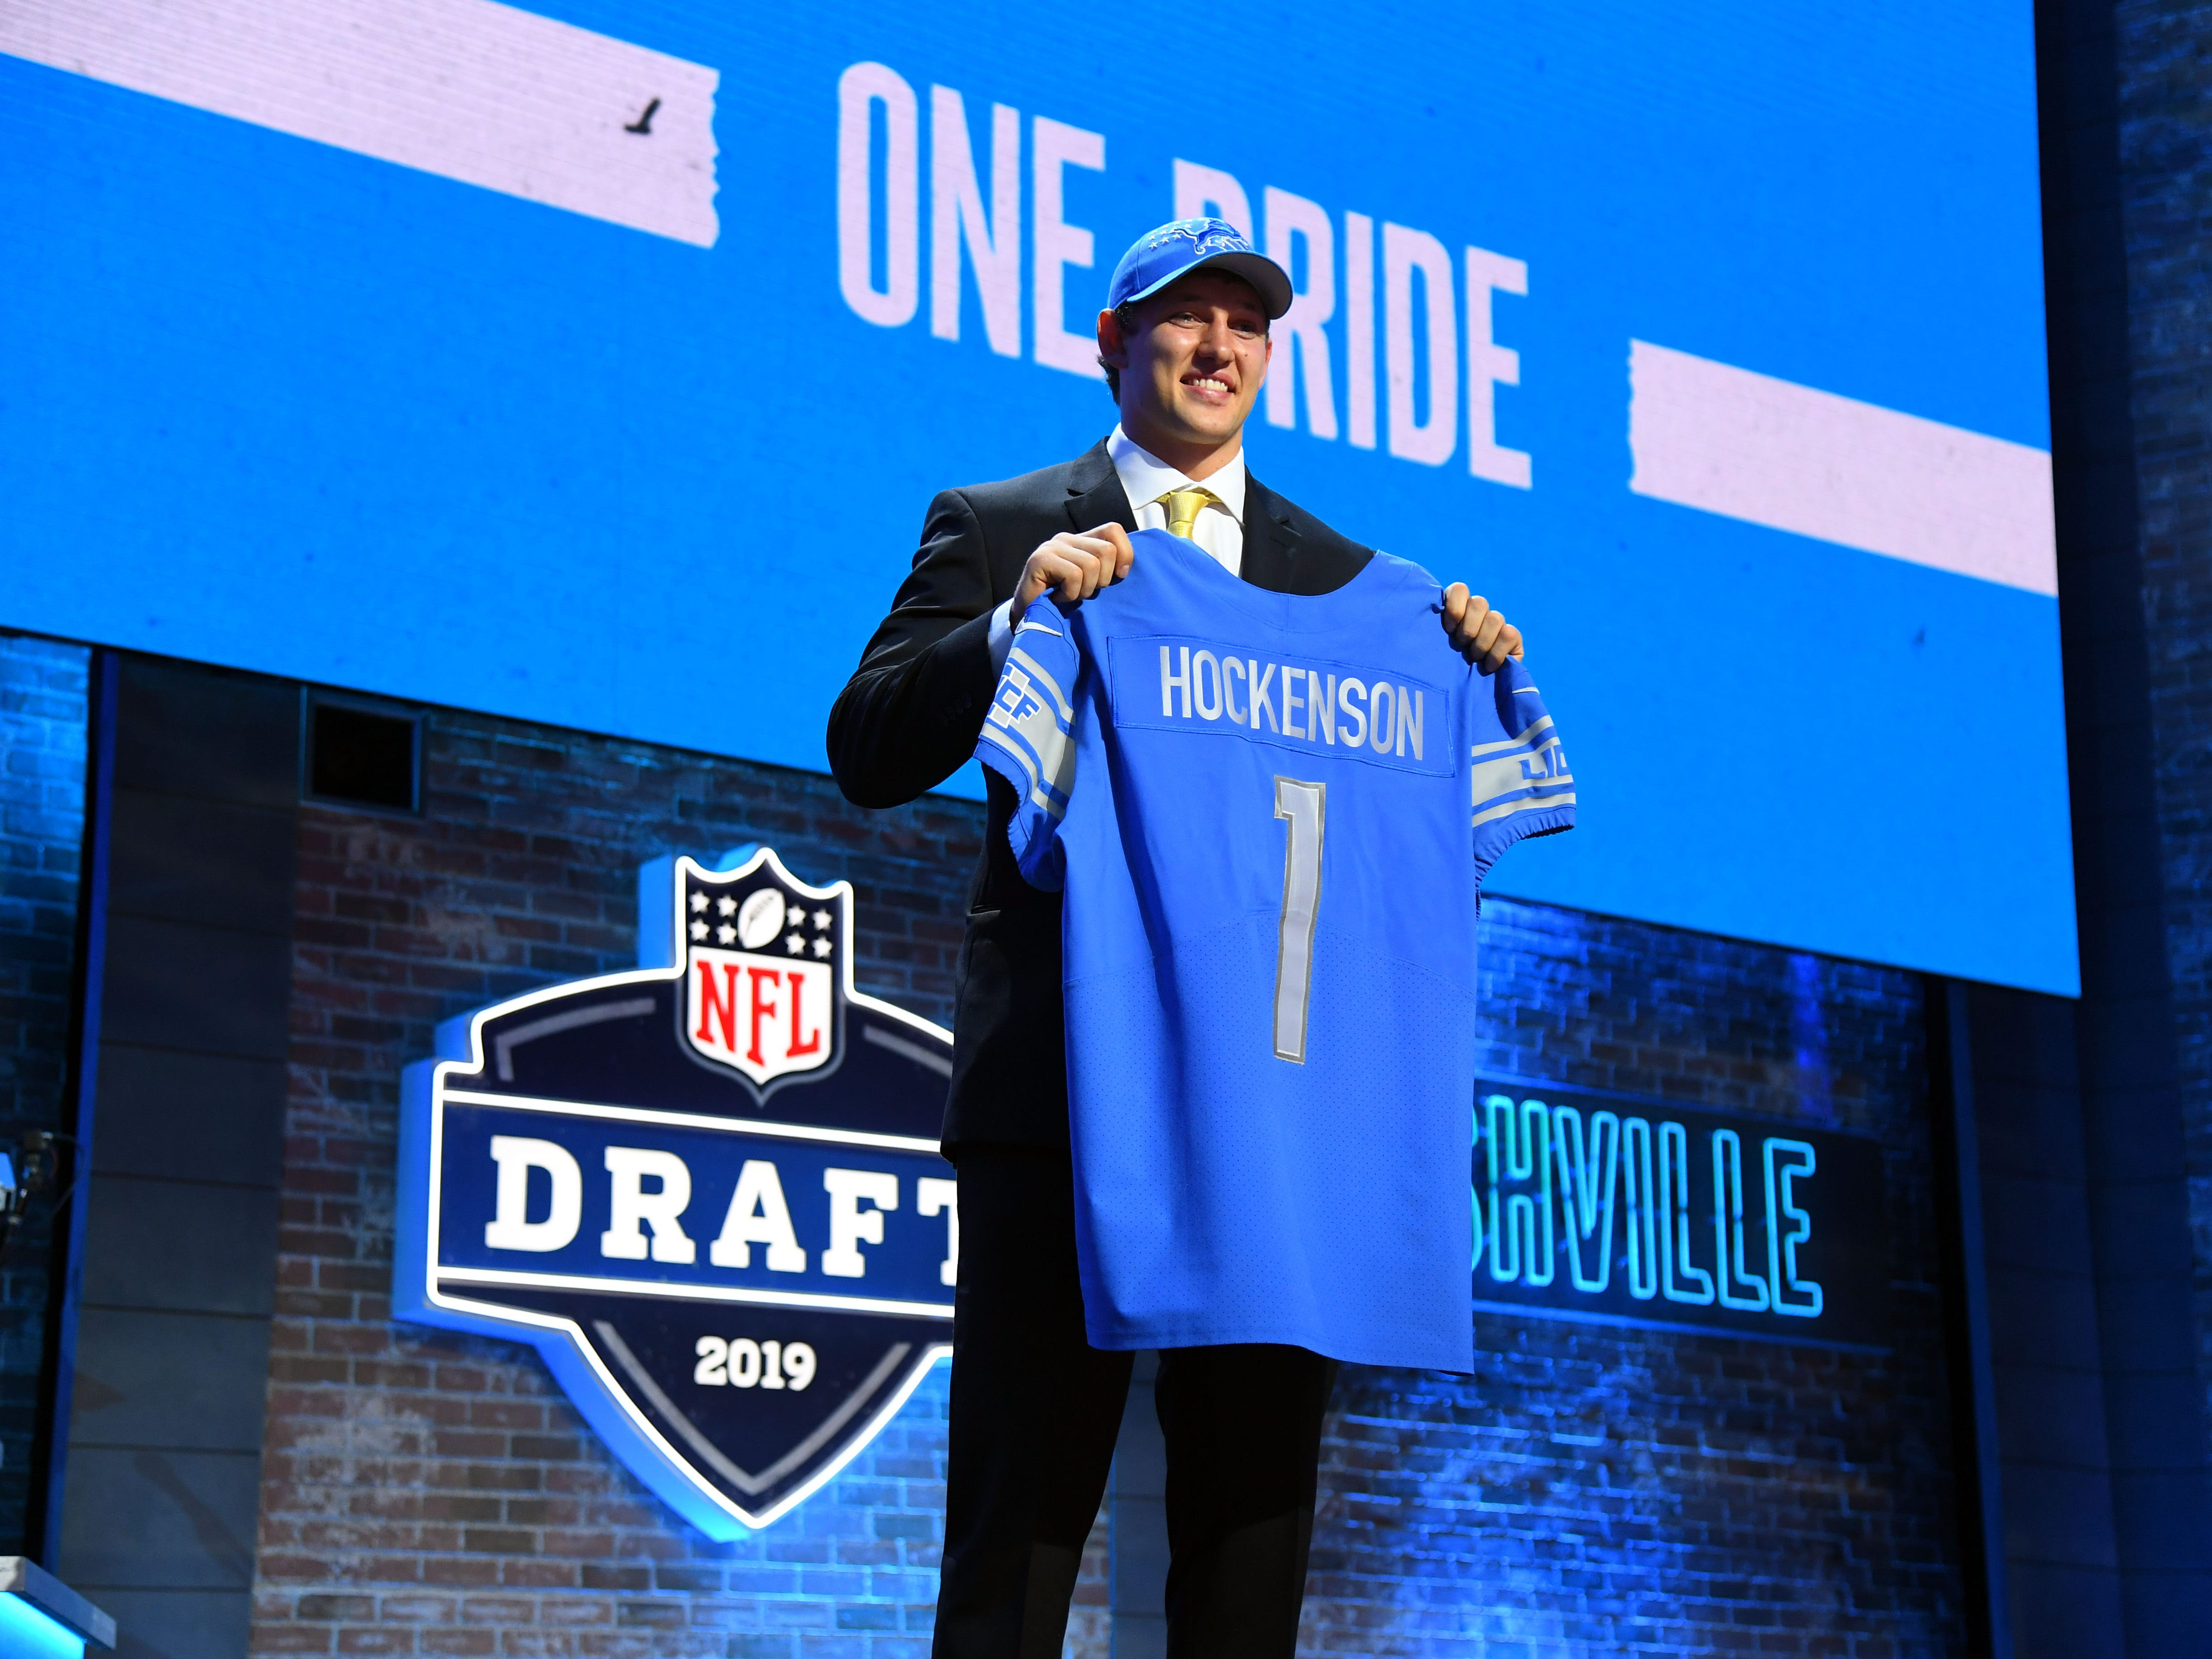 28. Lions (27): DE Trey Flowers, TE T.J. Hockenson are quality pick-ups. But Detroit looks outclassed in NFC North, and Matthew Stafford can't catch a break.